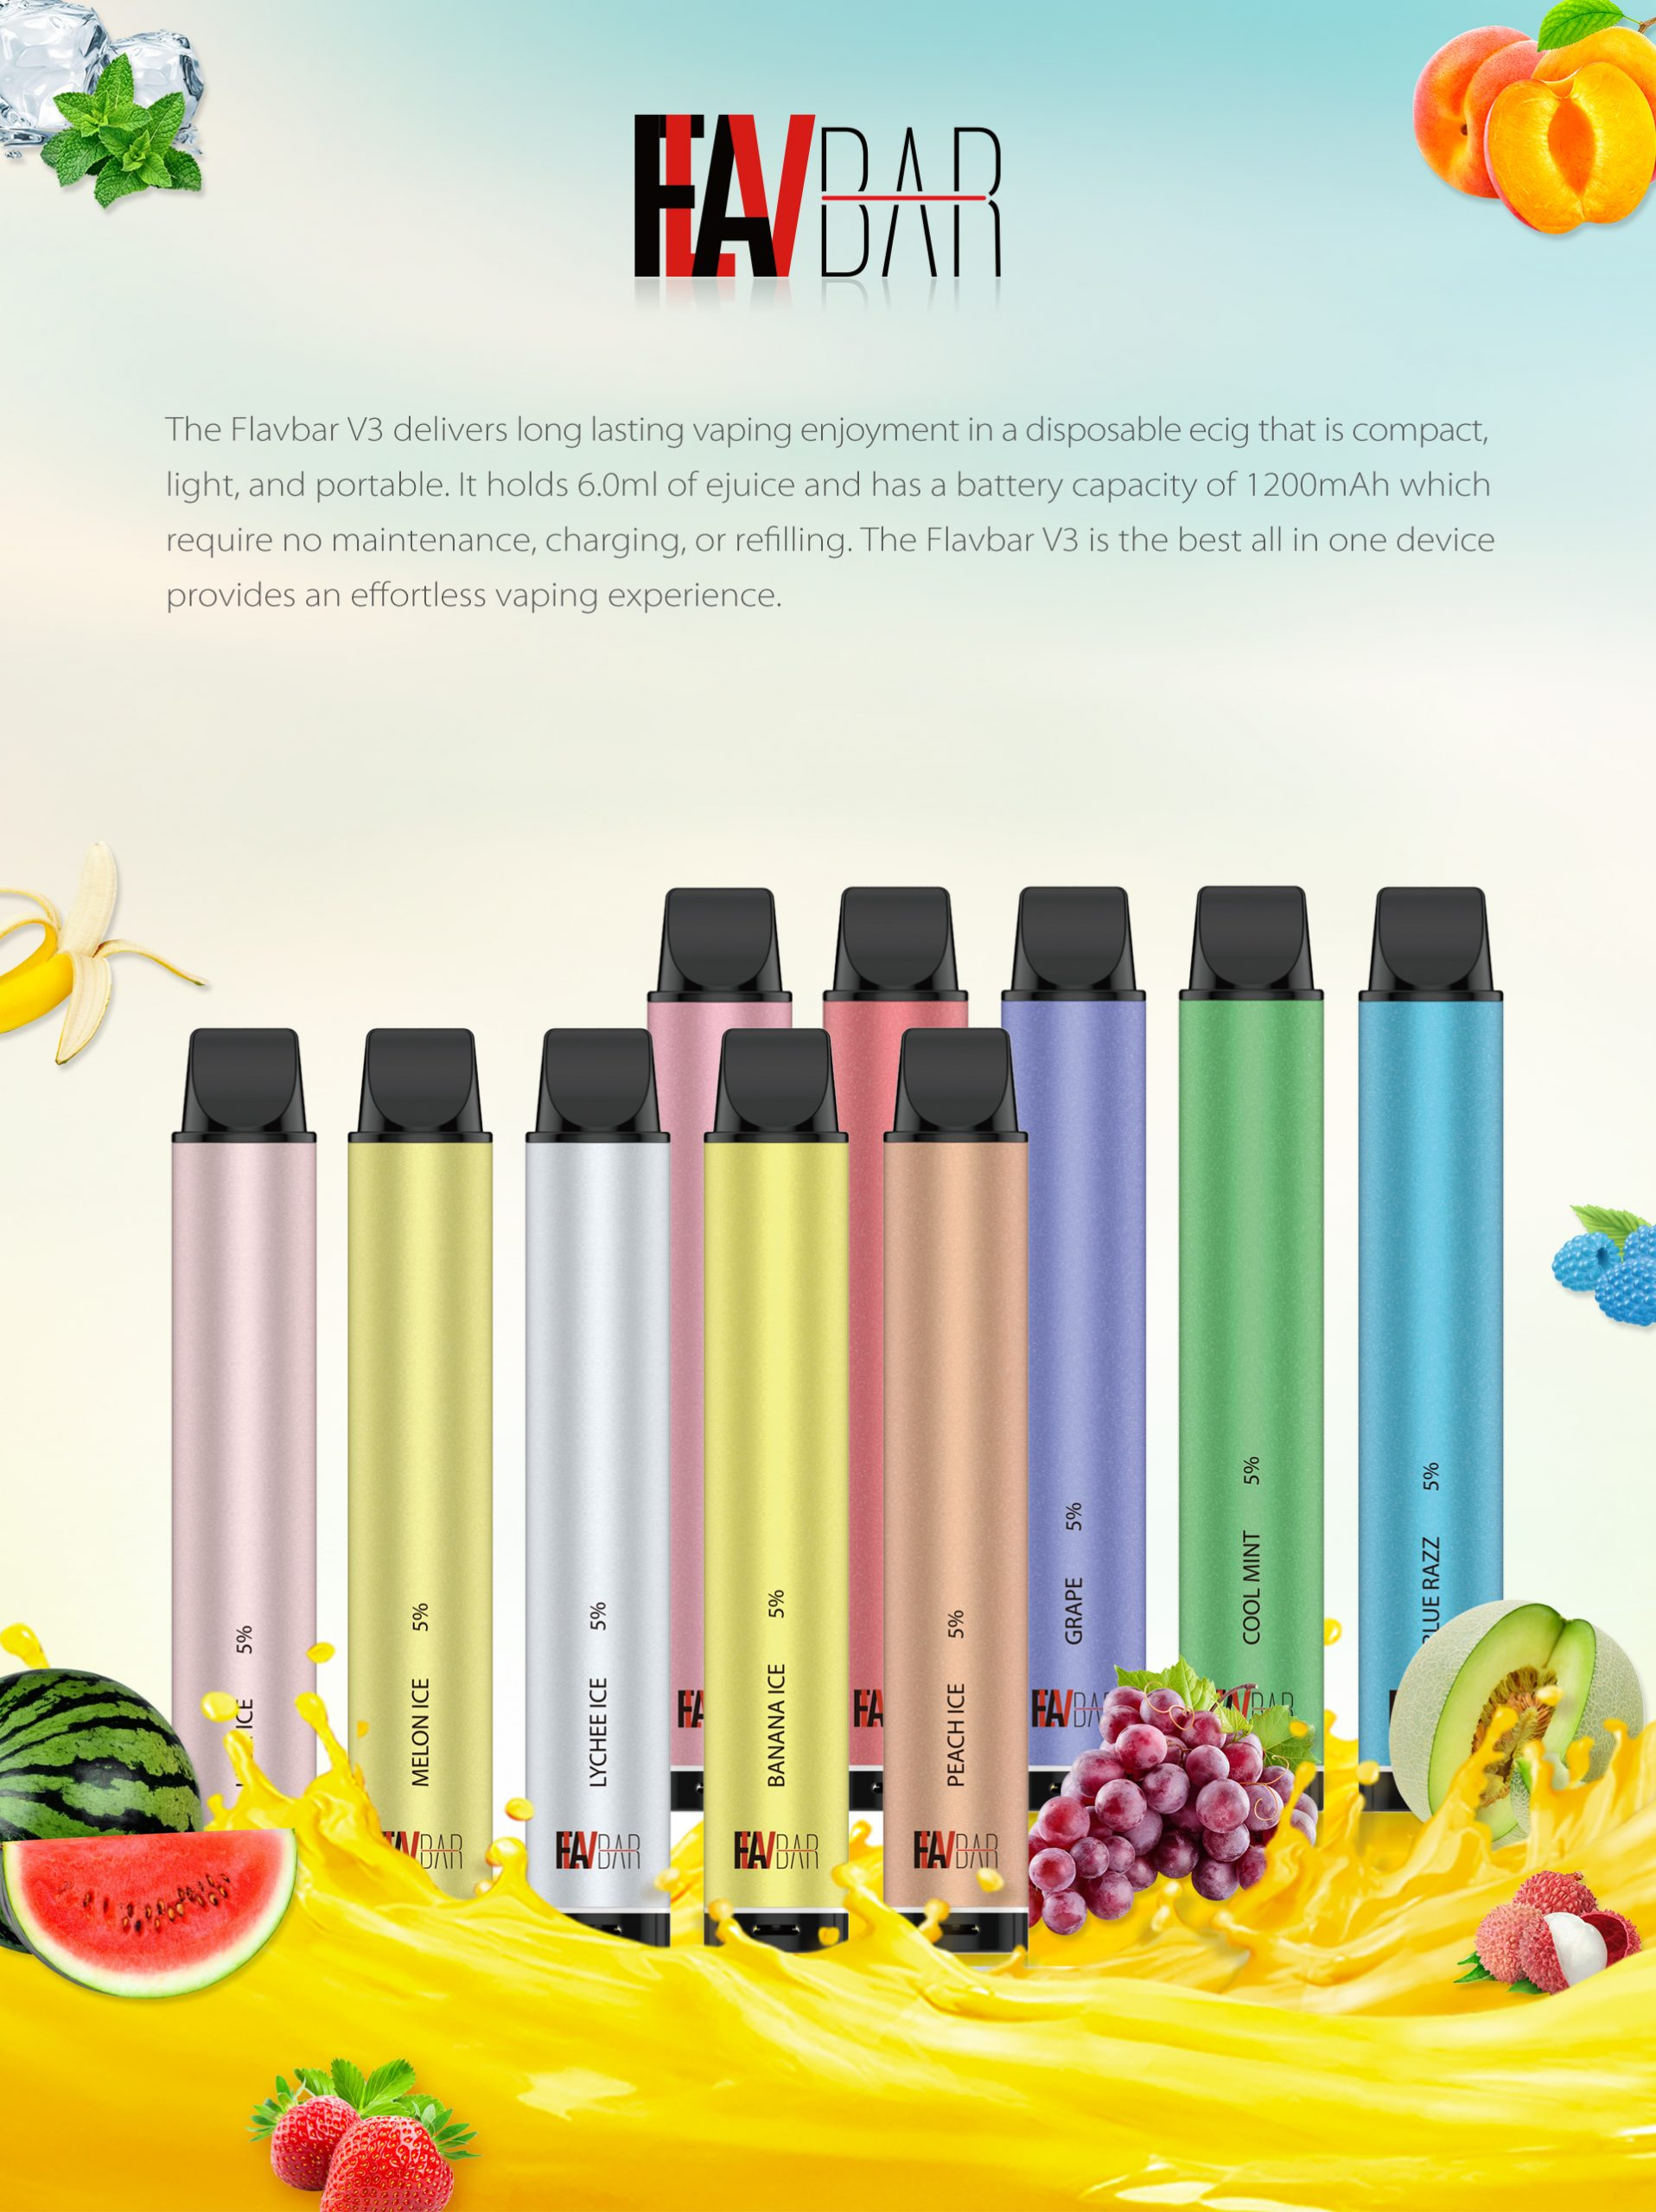 The Flavbar V3 delivers long lasting vaping enjoyment in a disposable ecig that is compact, light, and portable.